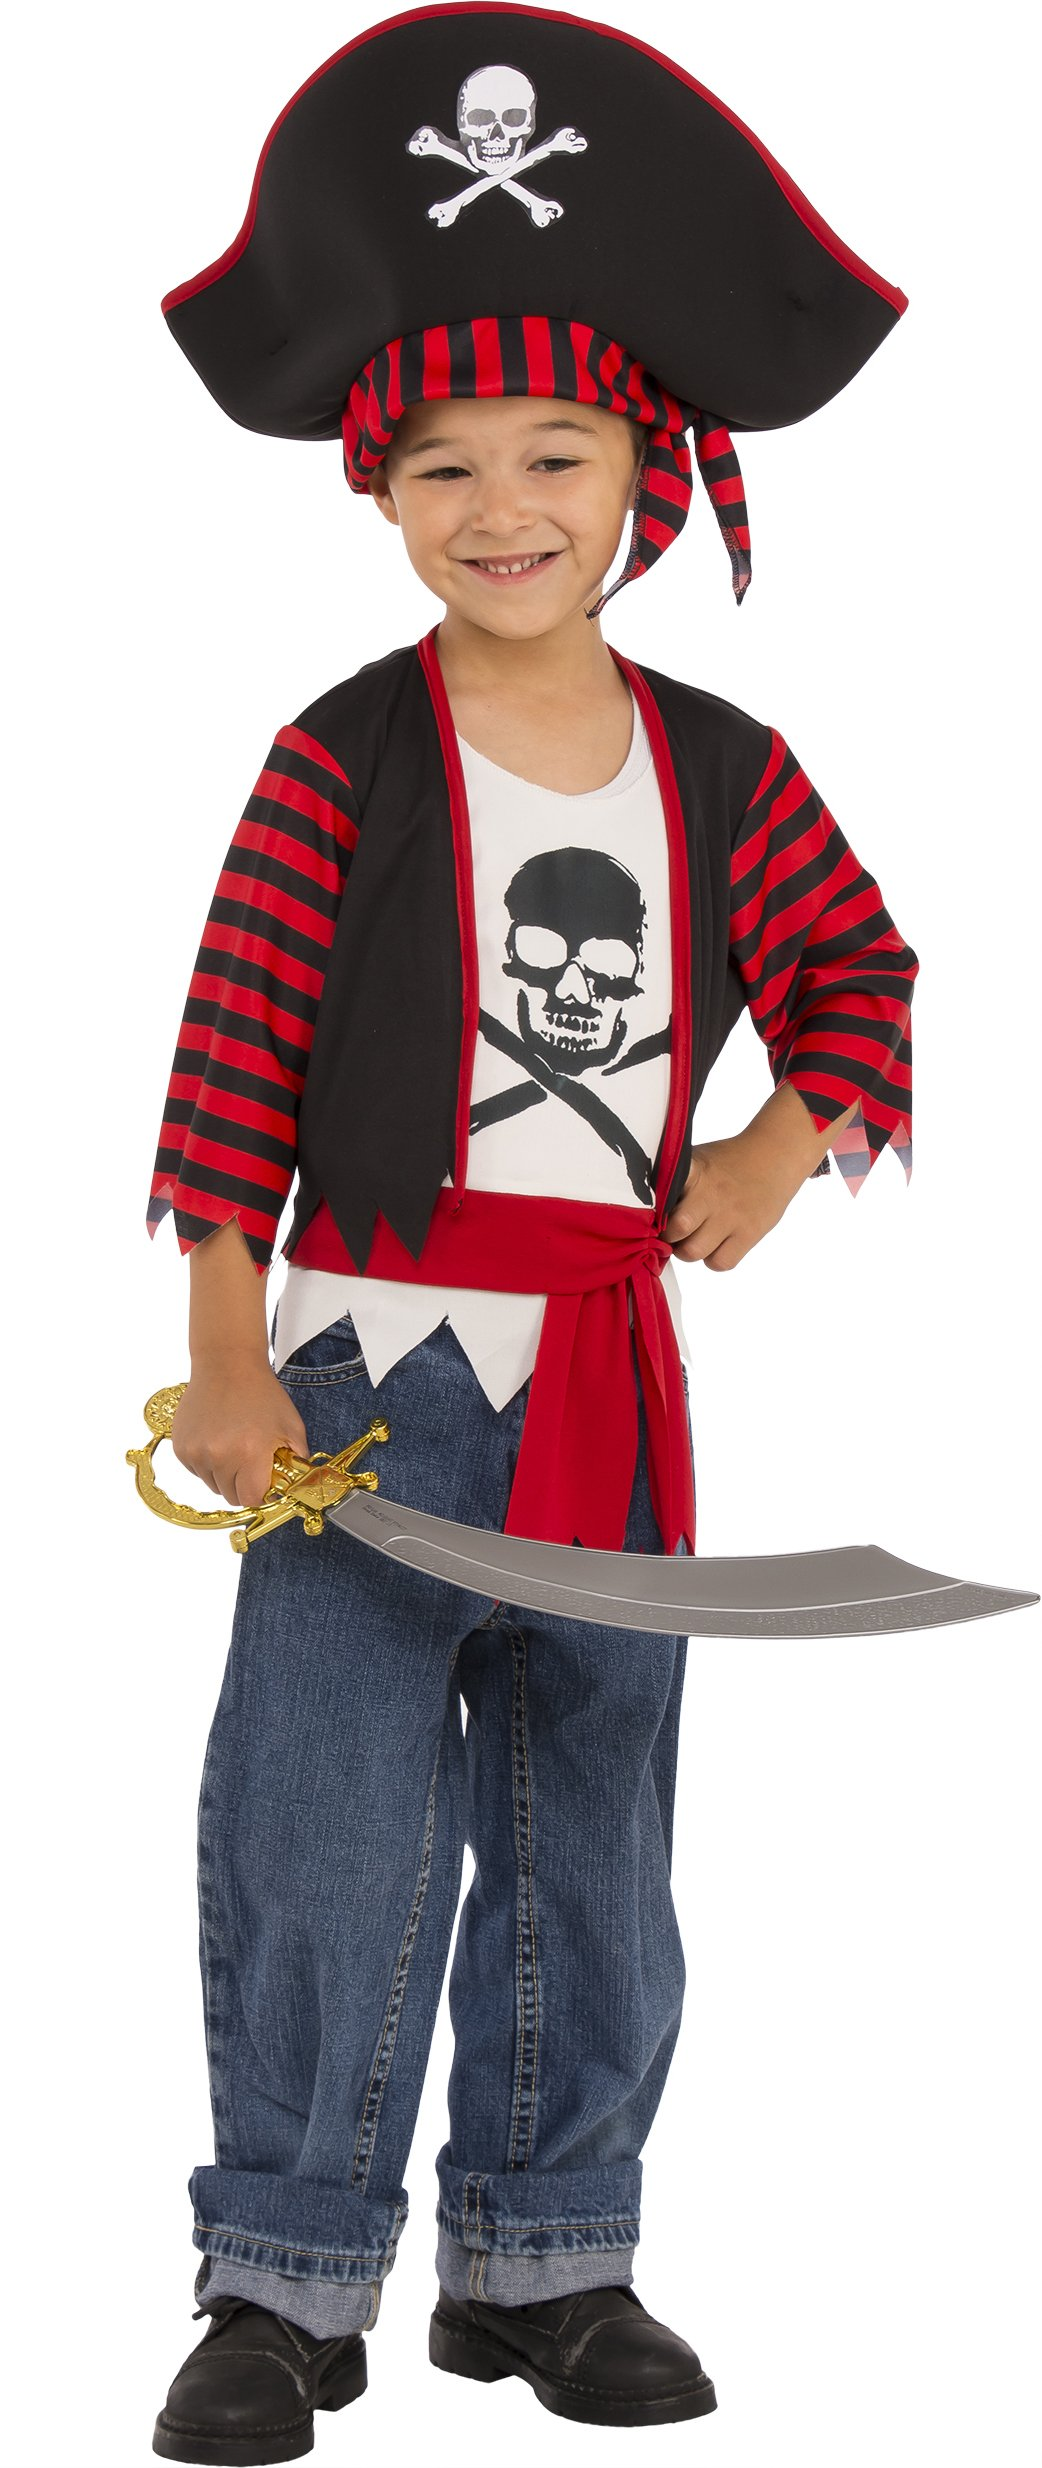 Rubies Child's Little Pirate Costume, Small, Multicolor